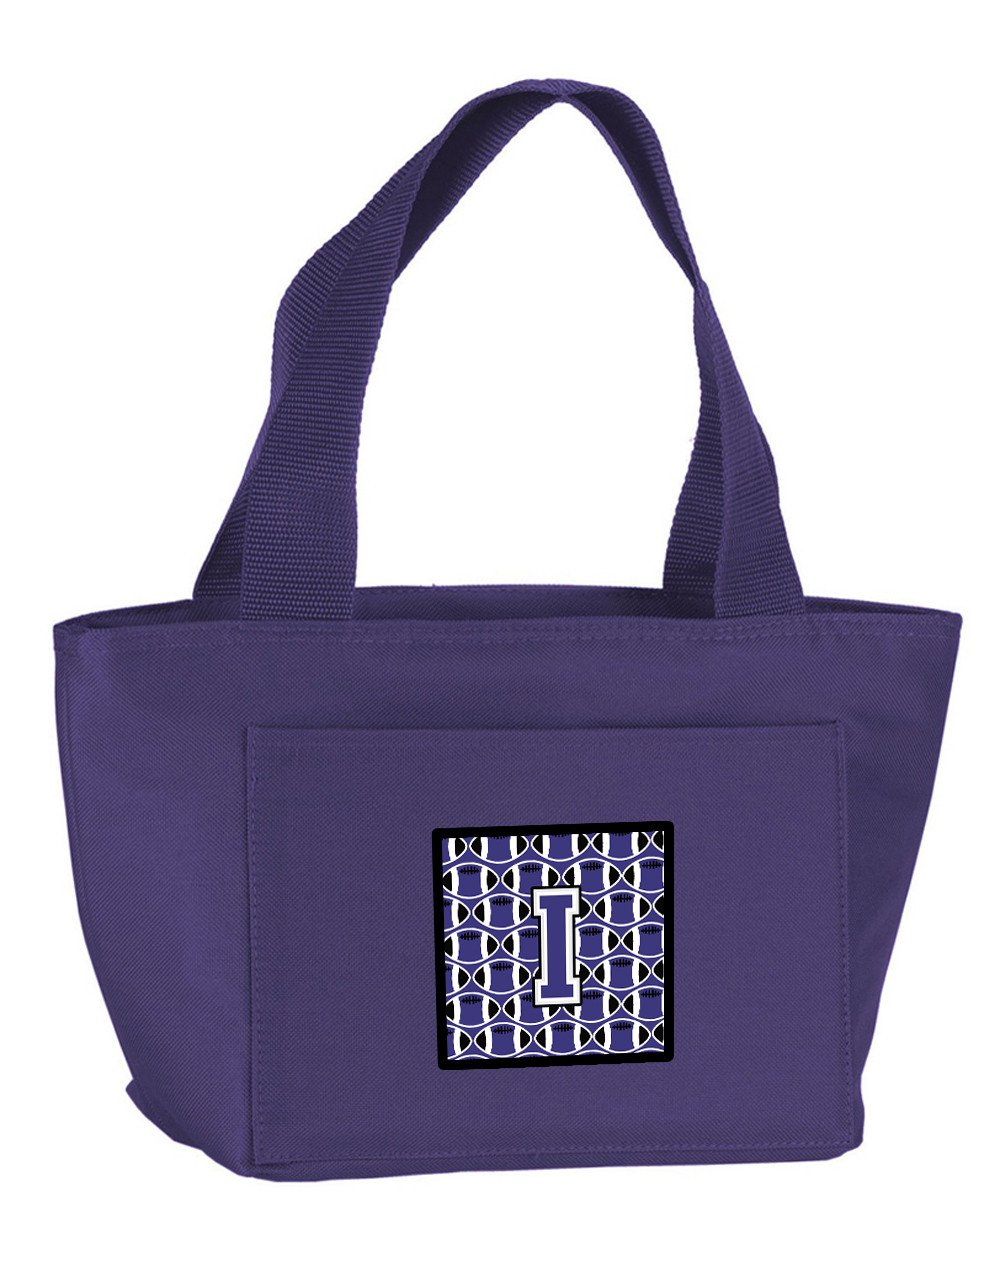 Letter I Football Purple and White Lunch Bag CJ1068-IPR-8808 by Caroline's Treasures